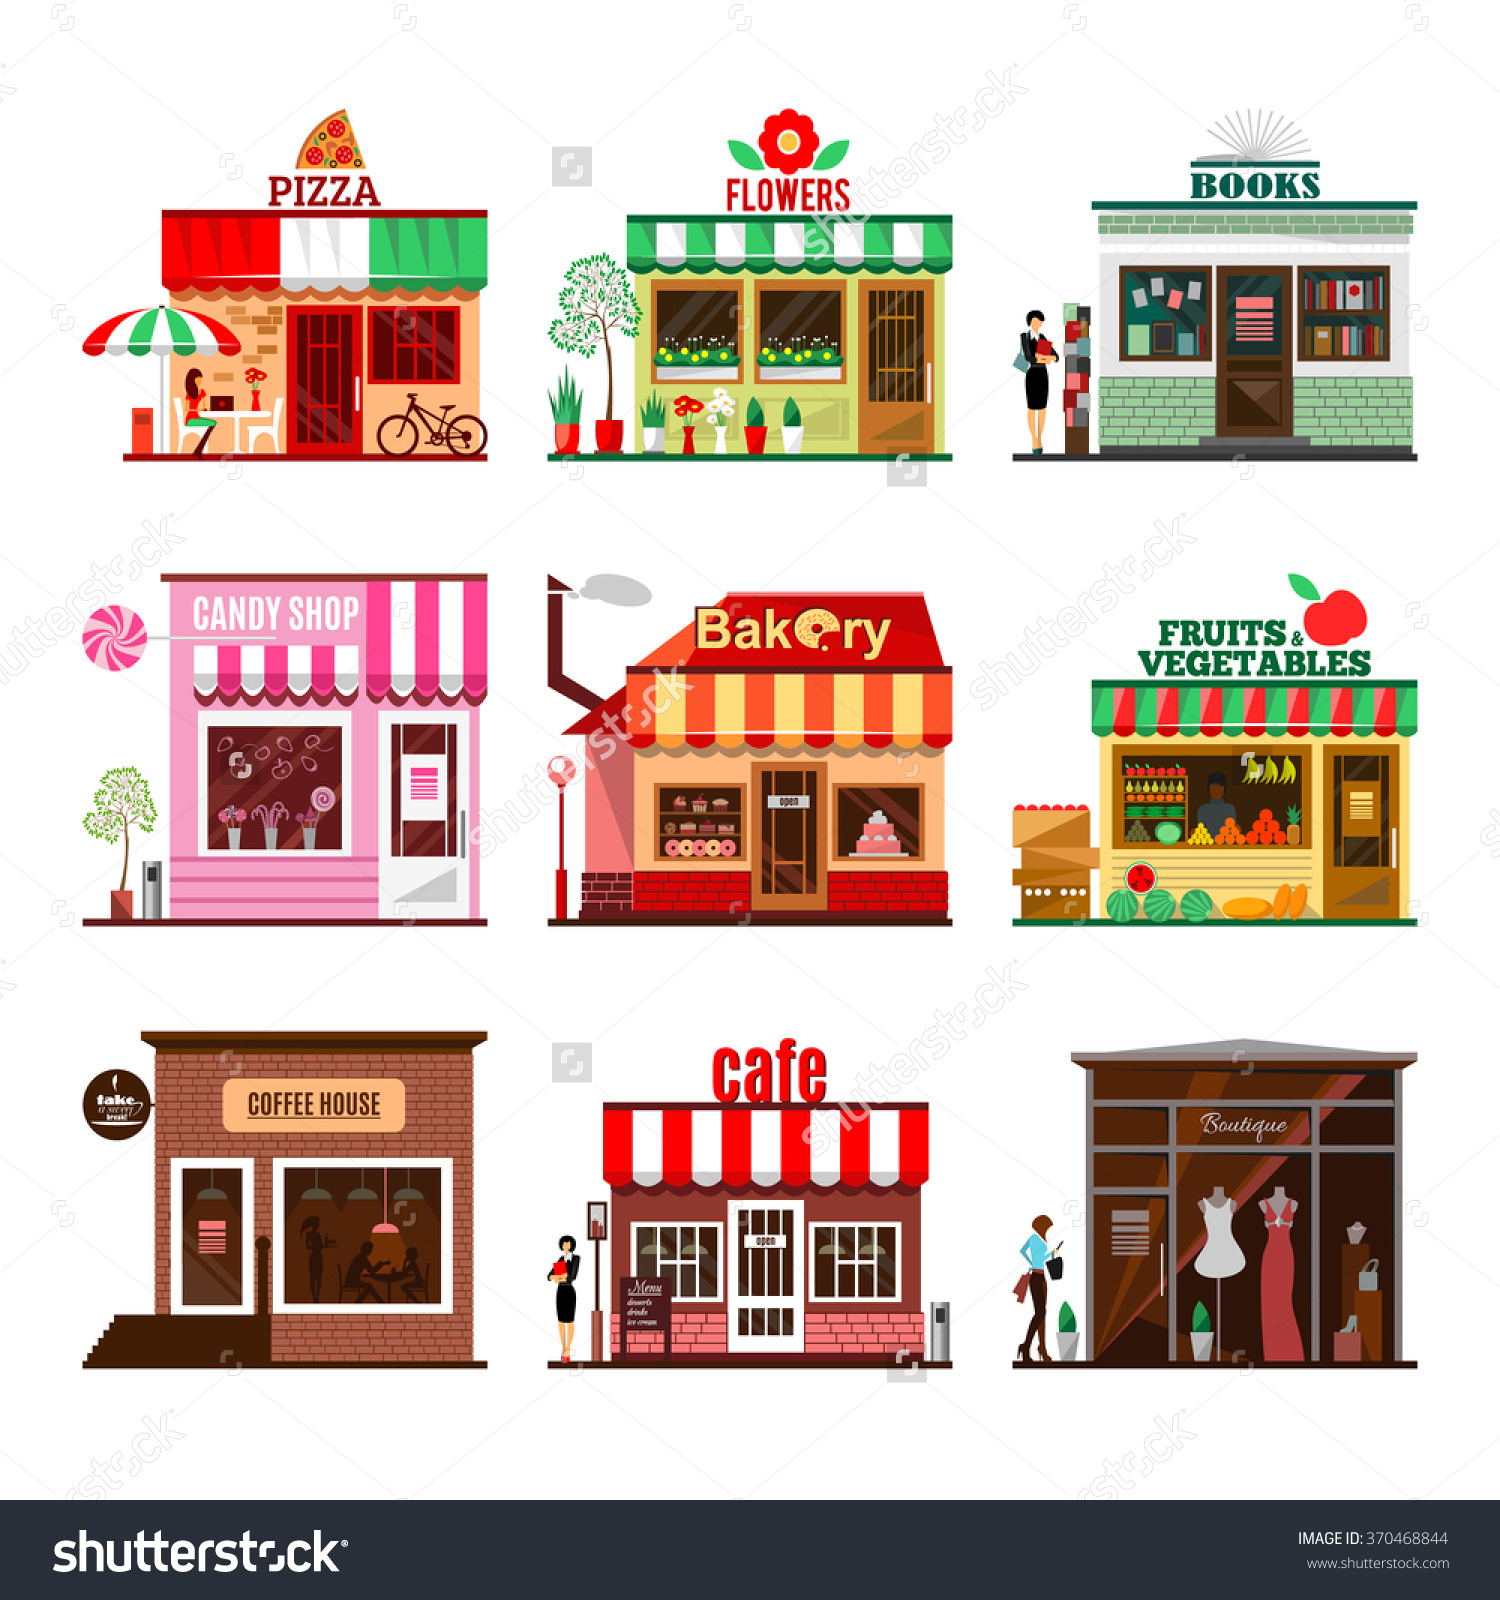 Front Architecture Stock Vectors & Vector Clip Art.